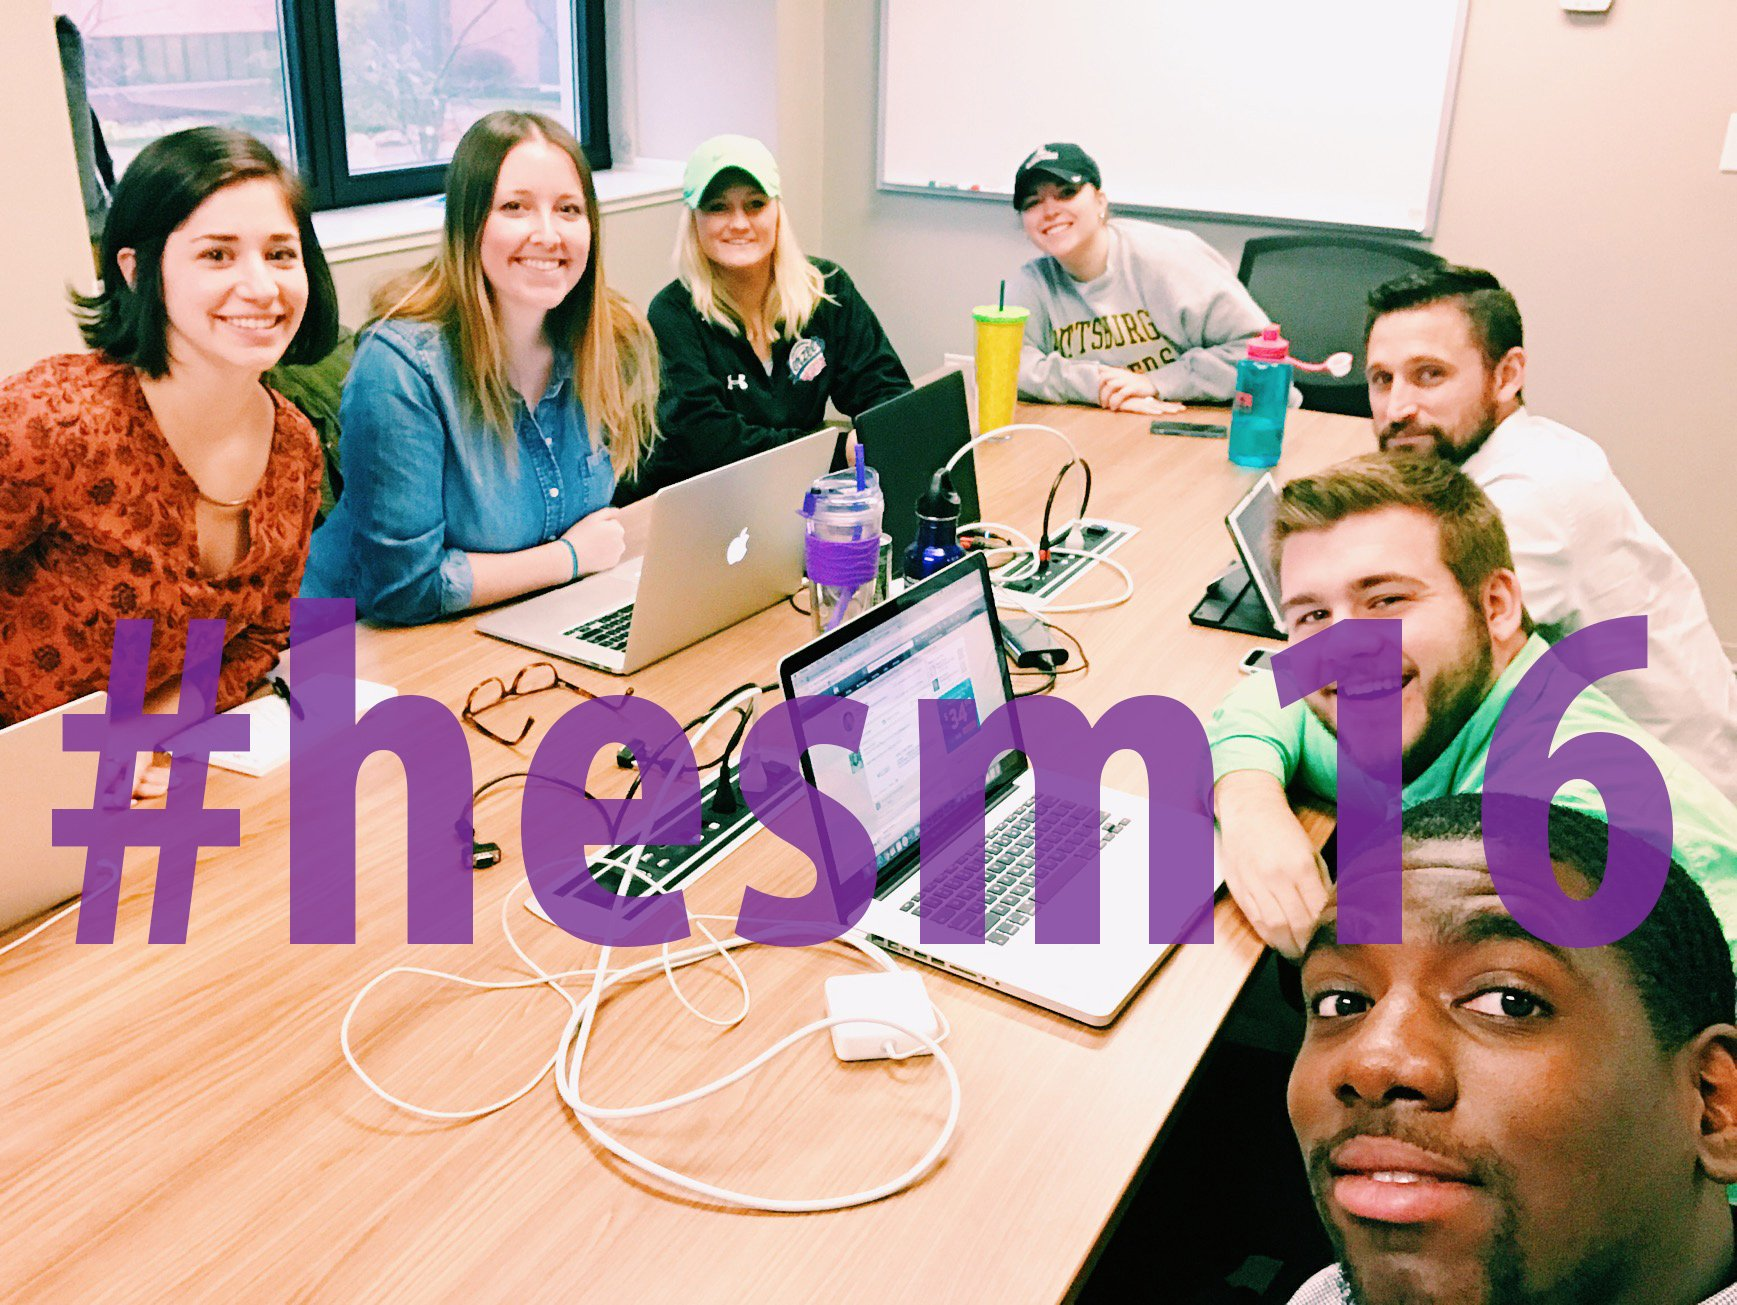 we love #hesm16! @mountunion https://t.co/r9AtNgzDn0